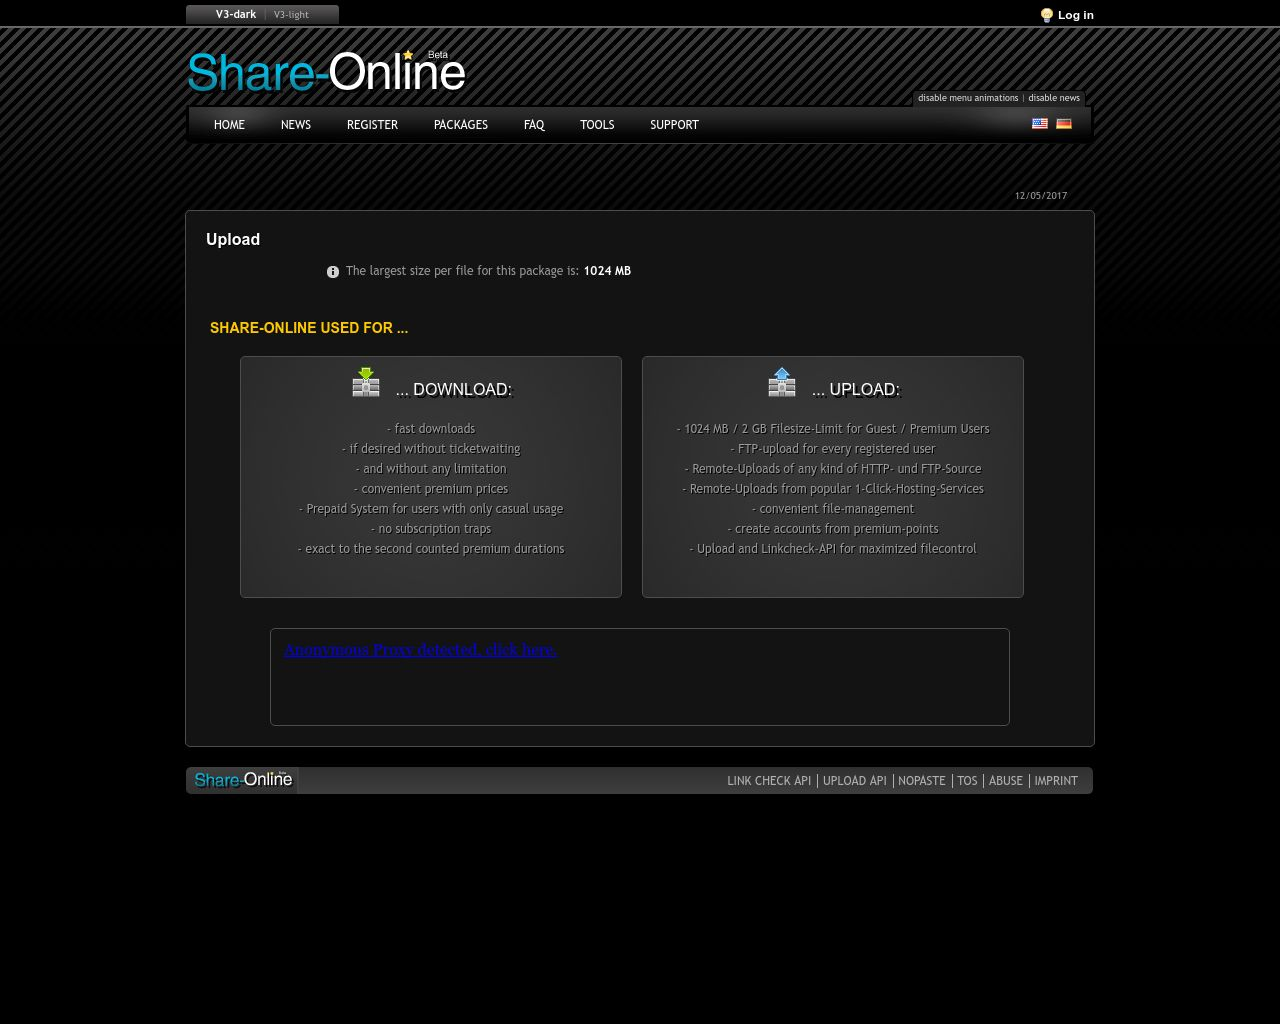 active shared member passwords for share-online [filelocker premium]